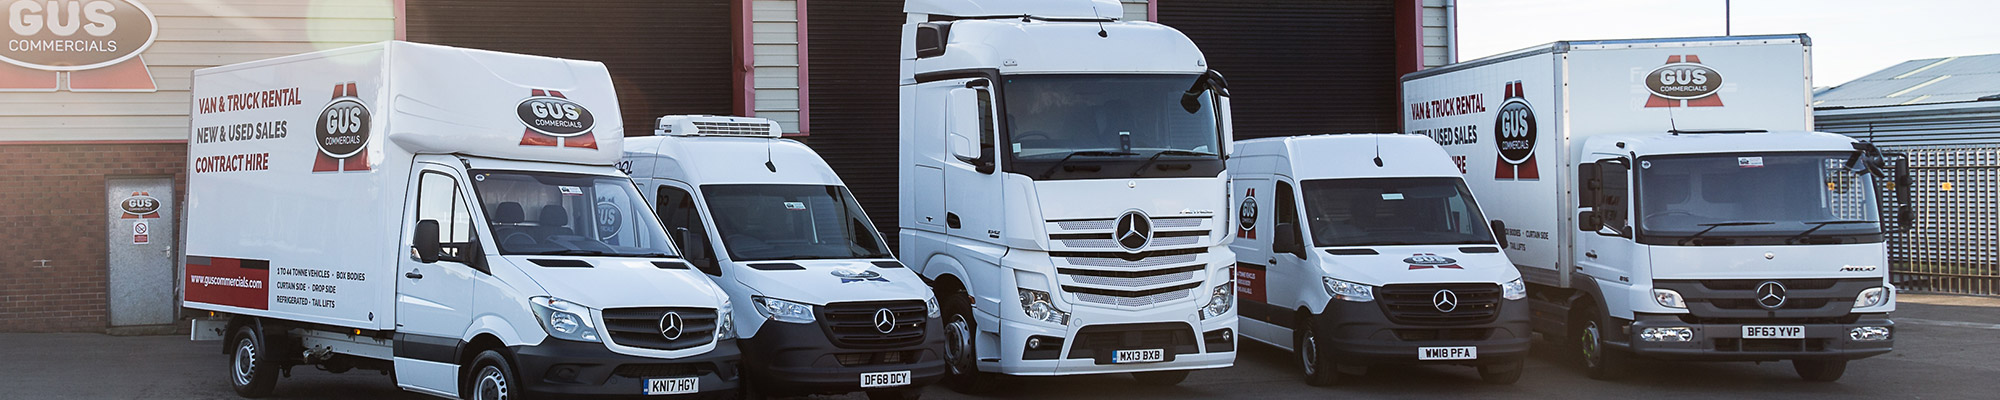 The full range of Gus Commercials' van and truck rental range, including a Mercedes Sprinter van, a refrigerated Mercedes Sprinter van, a 3.5 tonne box body, an 18 tonne box body and a Mercedes Actros truck cab